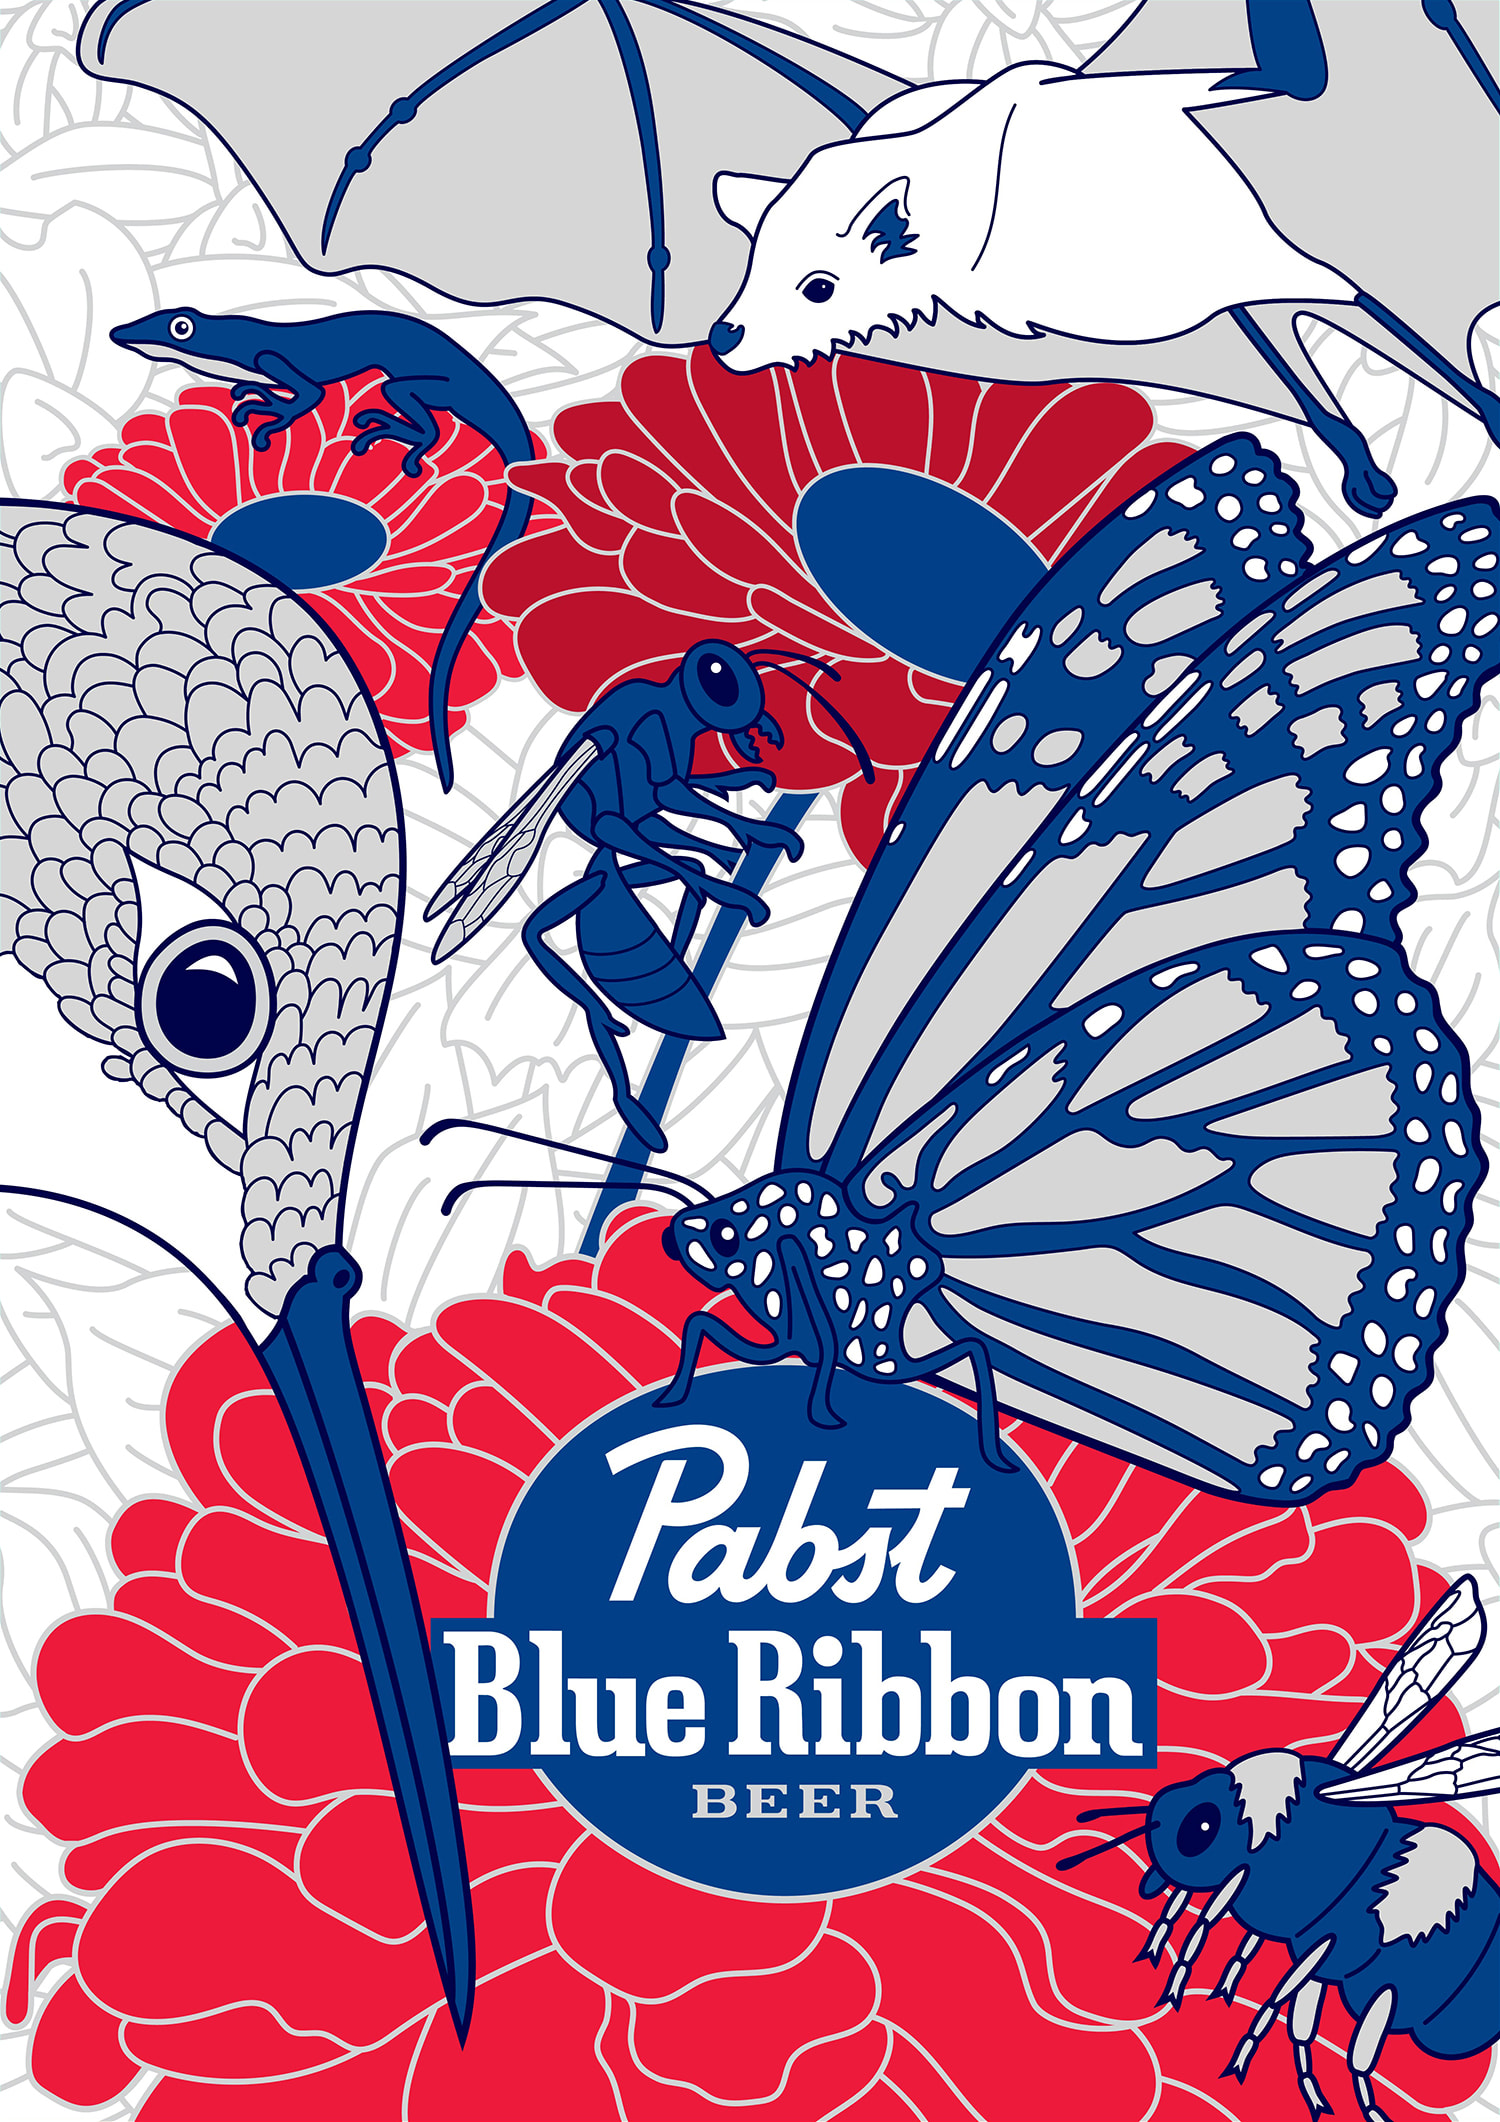 PBR Art Can Contest Entry